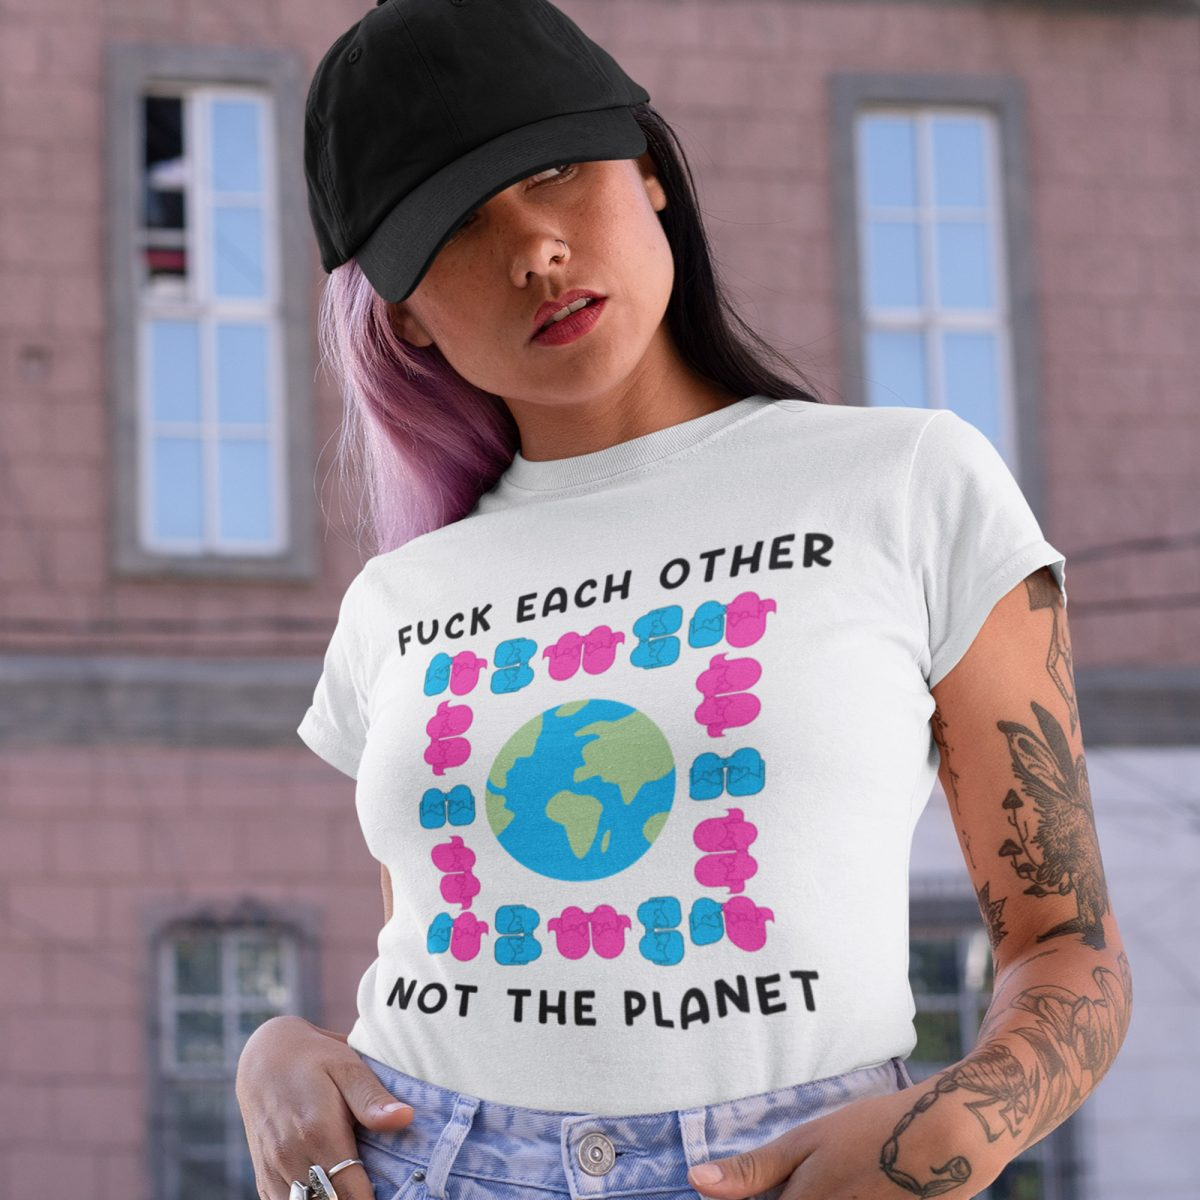 fuck-each-other-not-the-planet-filthy-BDSM-kinky-unisex-white-tshirt-4